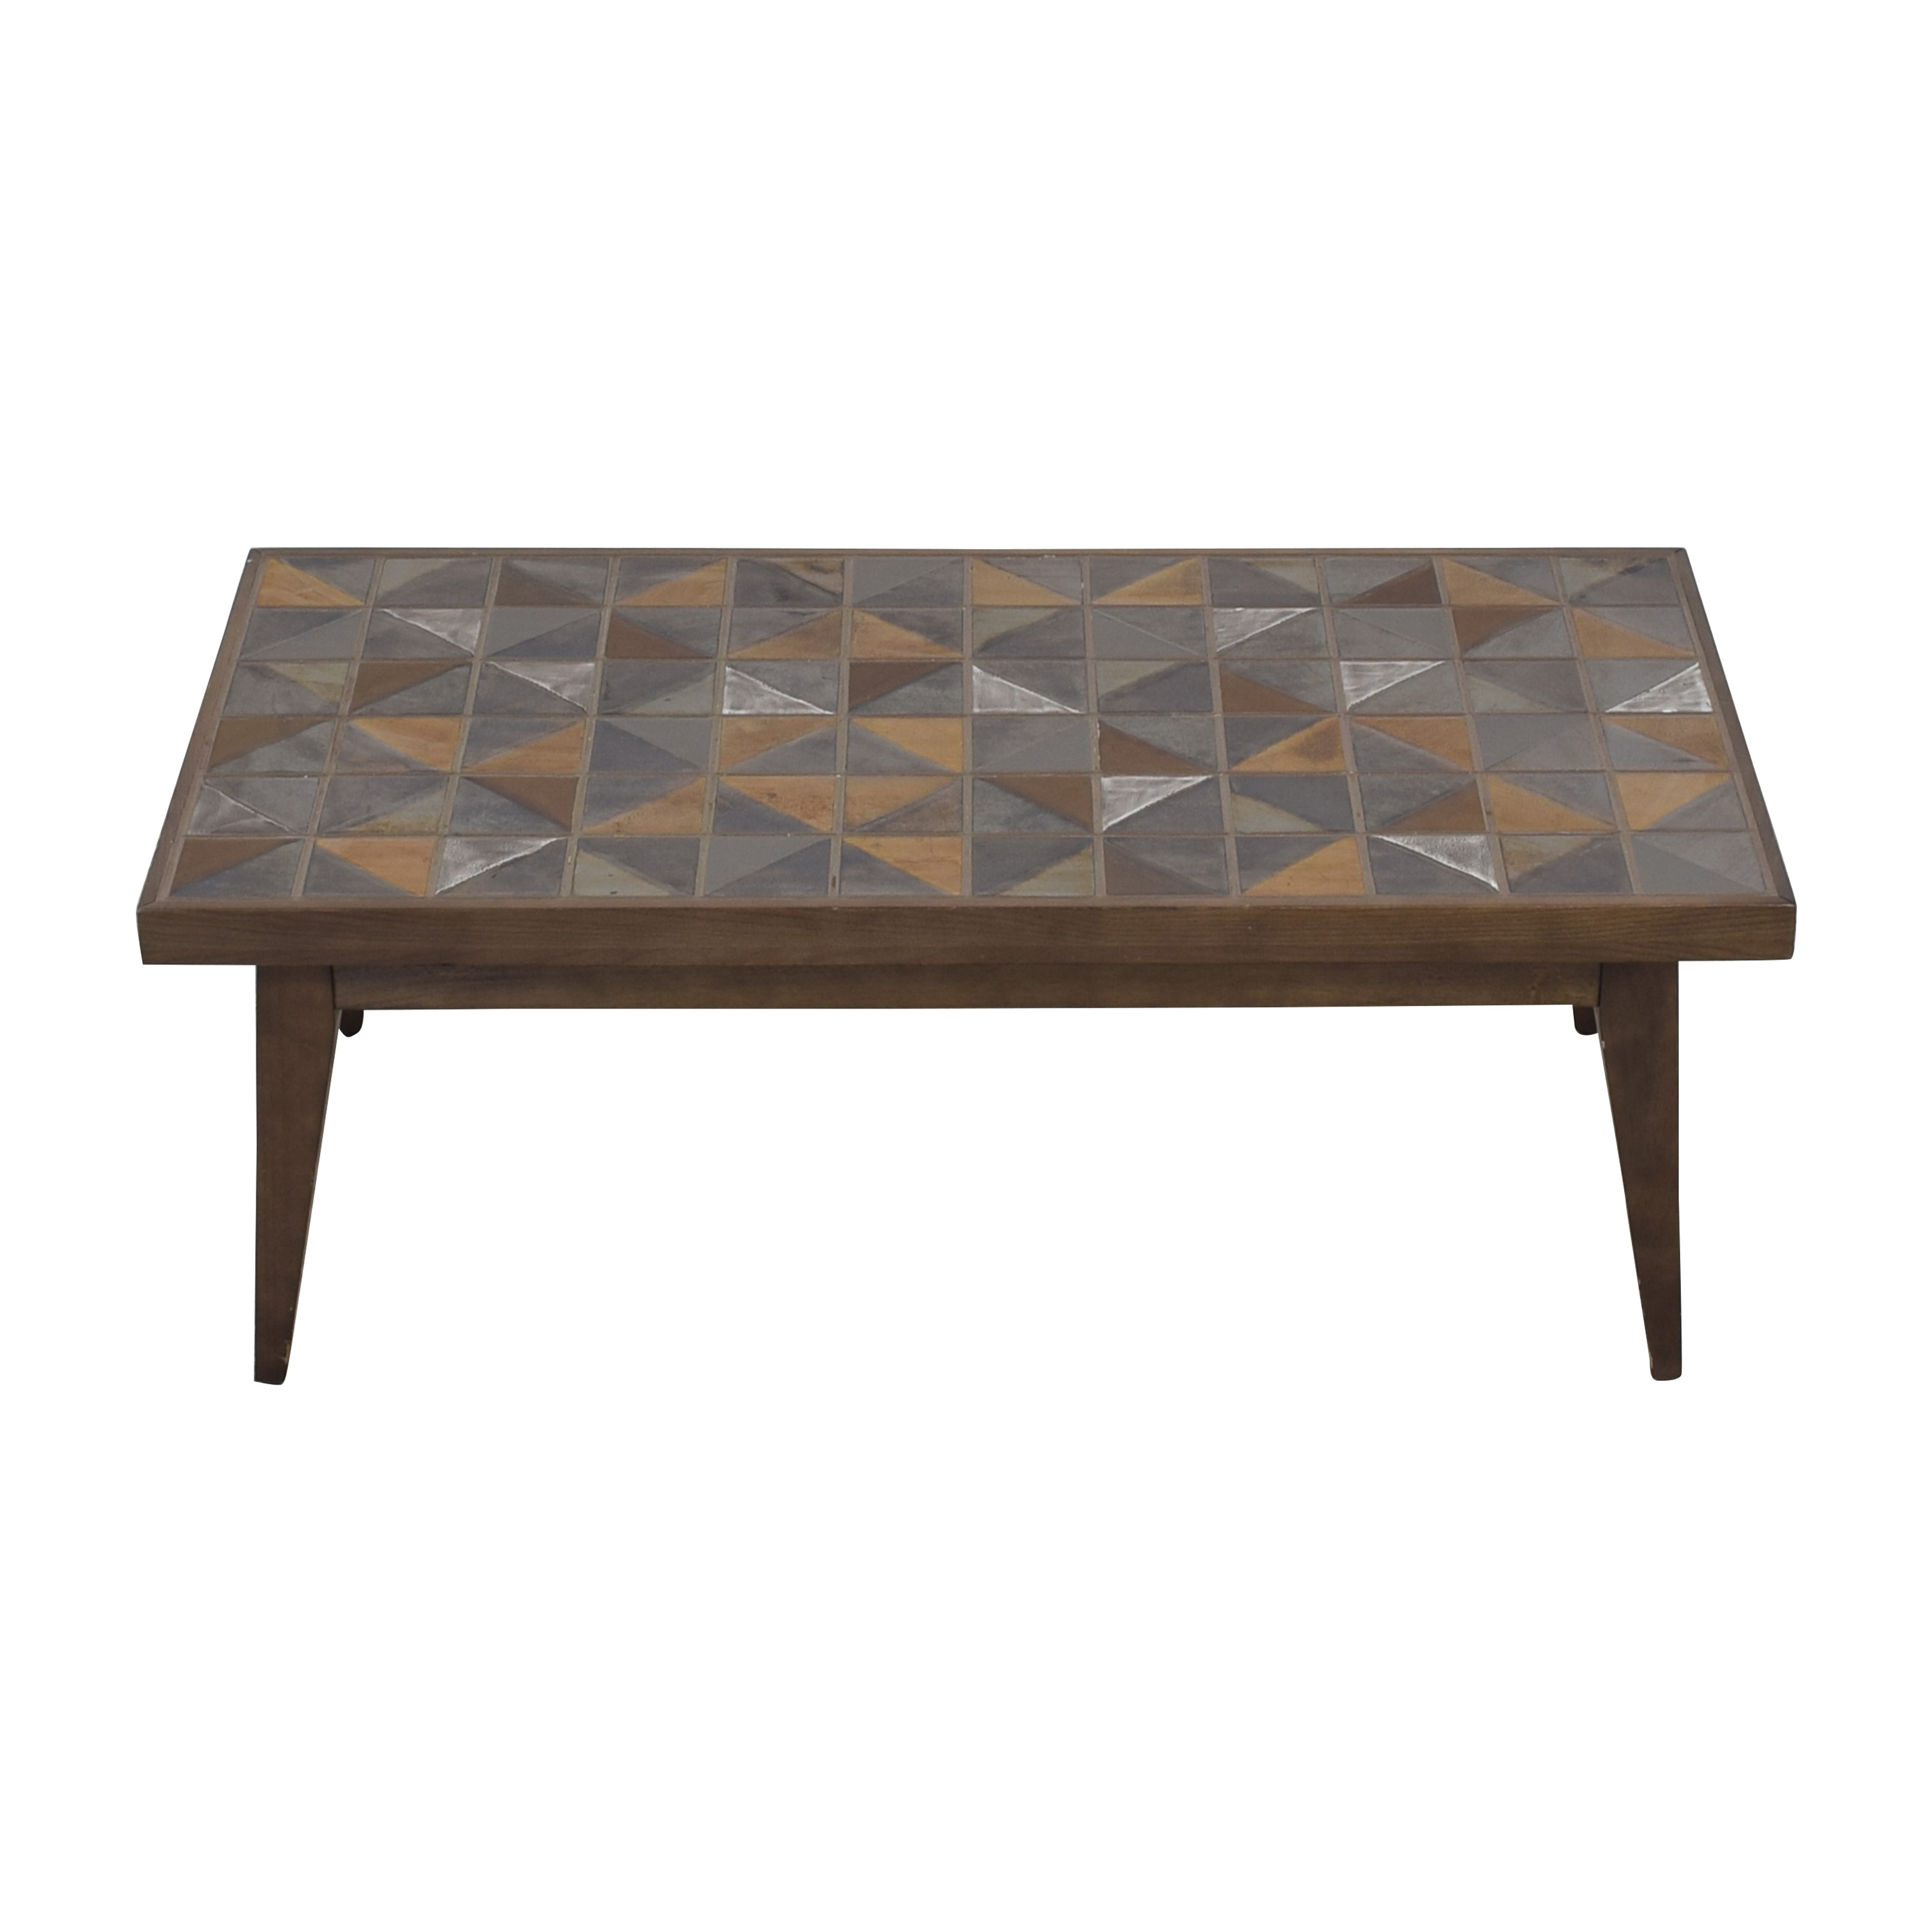 shop West Elm Lubna Chowdhary Coffee Table West Elm Tables